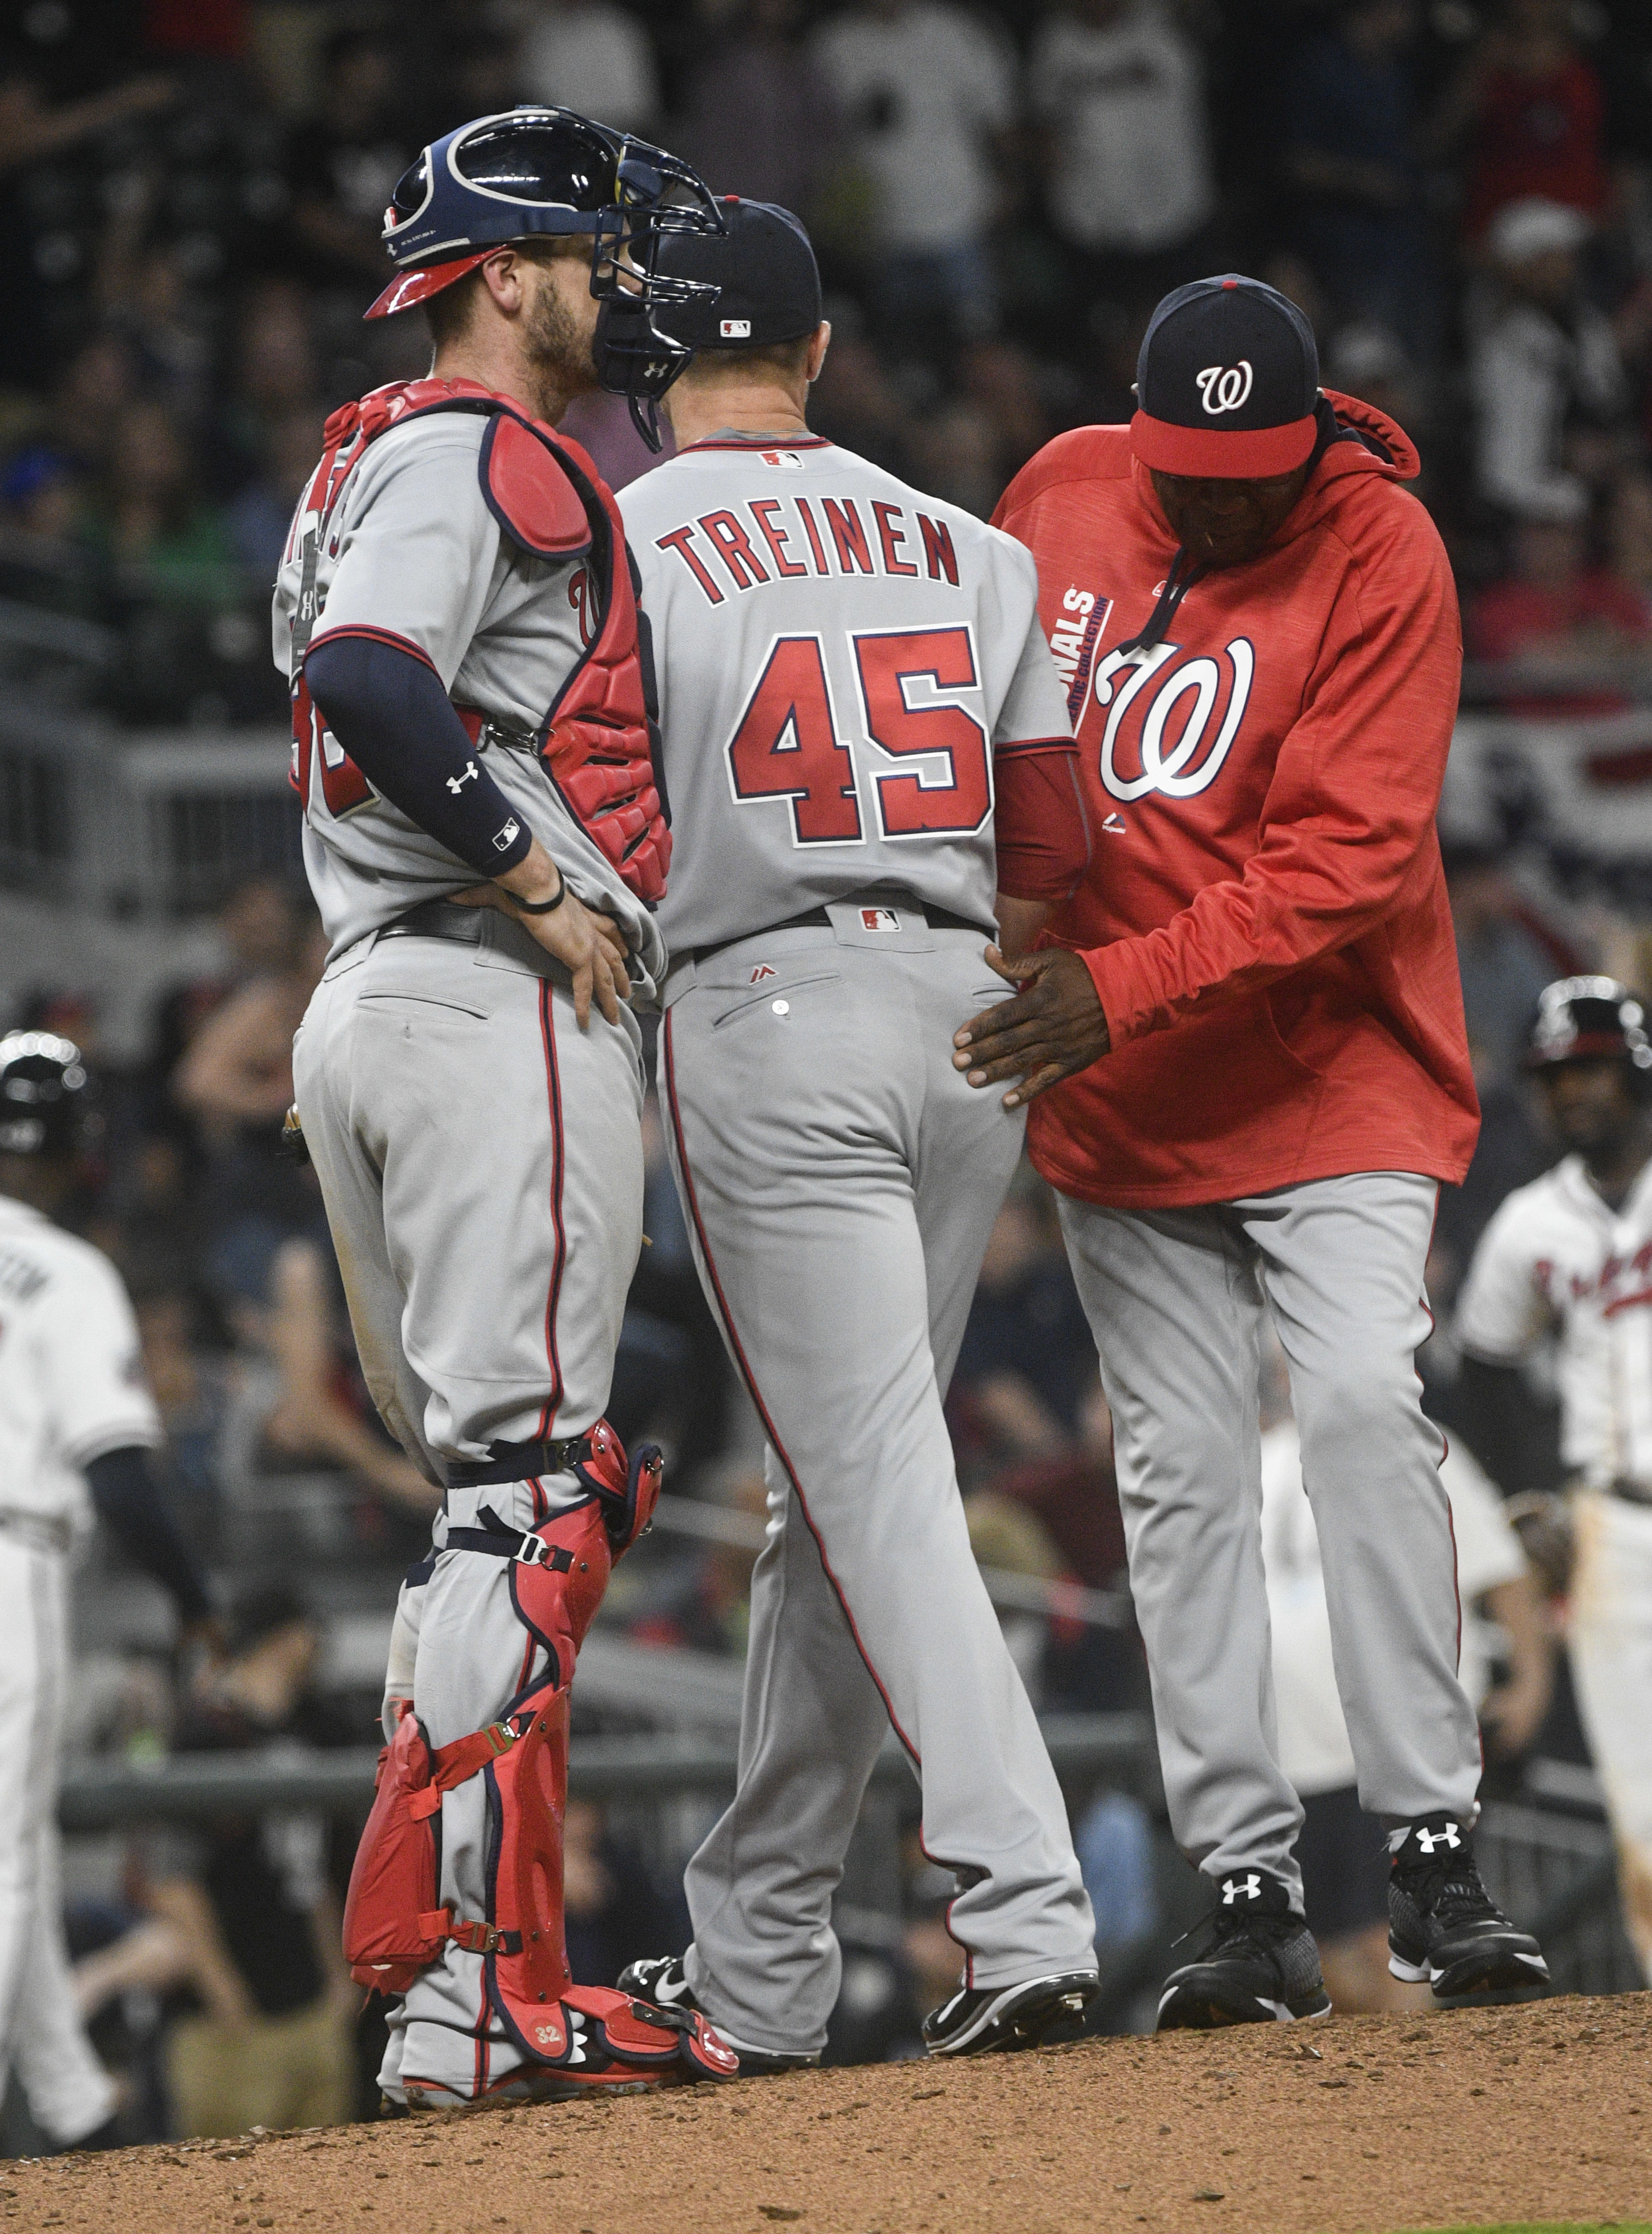 Washington Nationals pitcher Blake Treinen (45) is pulled from the baseball game by manager Dusty Baker, right, as catcher Matt Wieters stands by, after the Atlanta Braves loaded the bases during the ninth inning Tuesday, April 18, 2017, in Atlanta. Washington won 3-1. (AP Photo/John Amis)